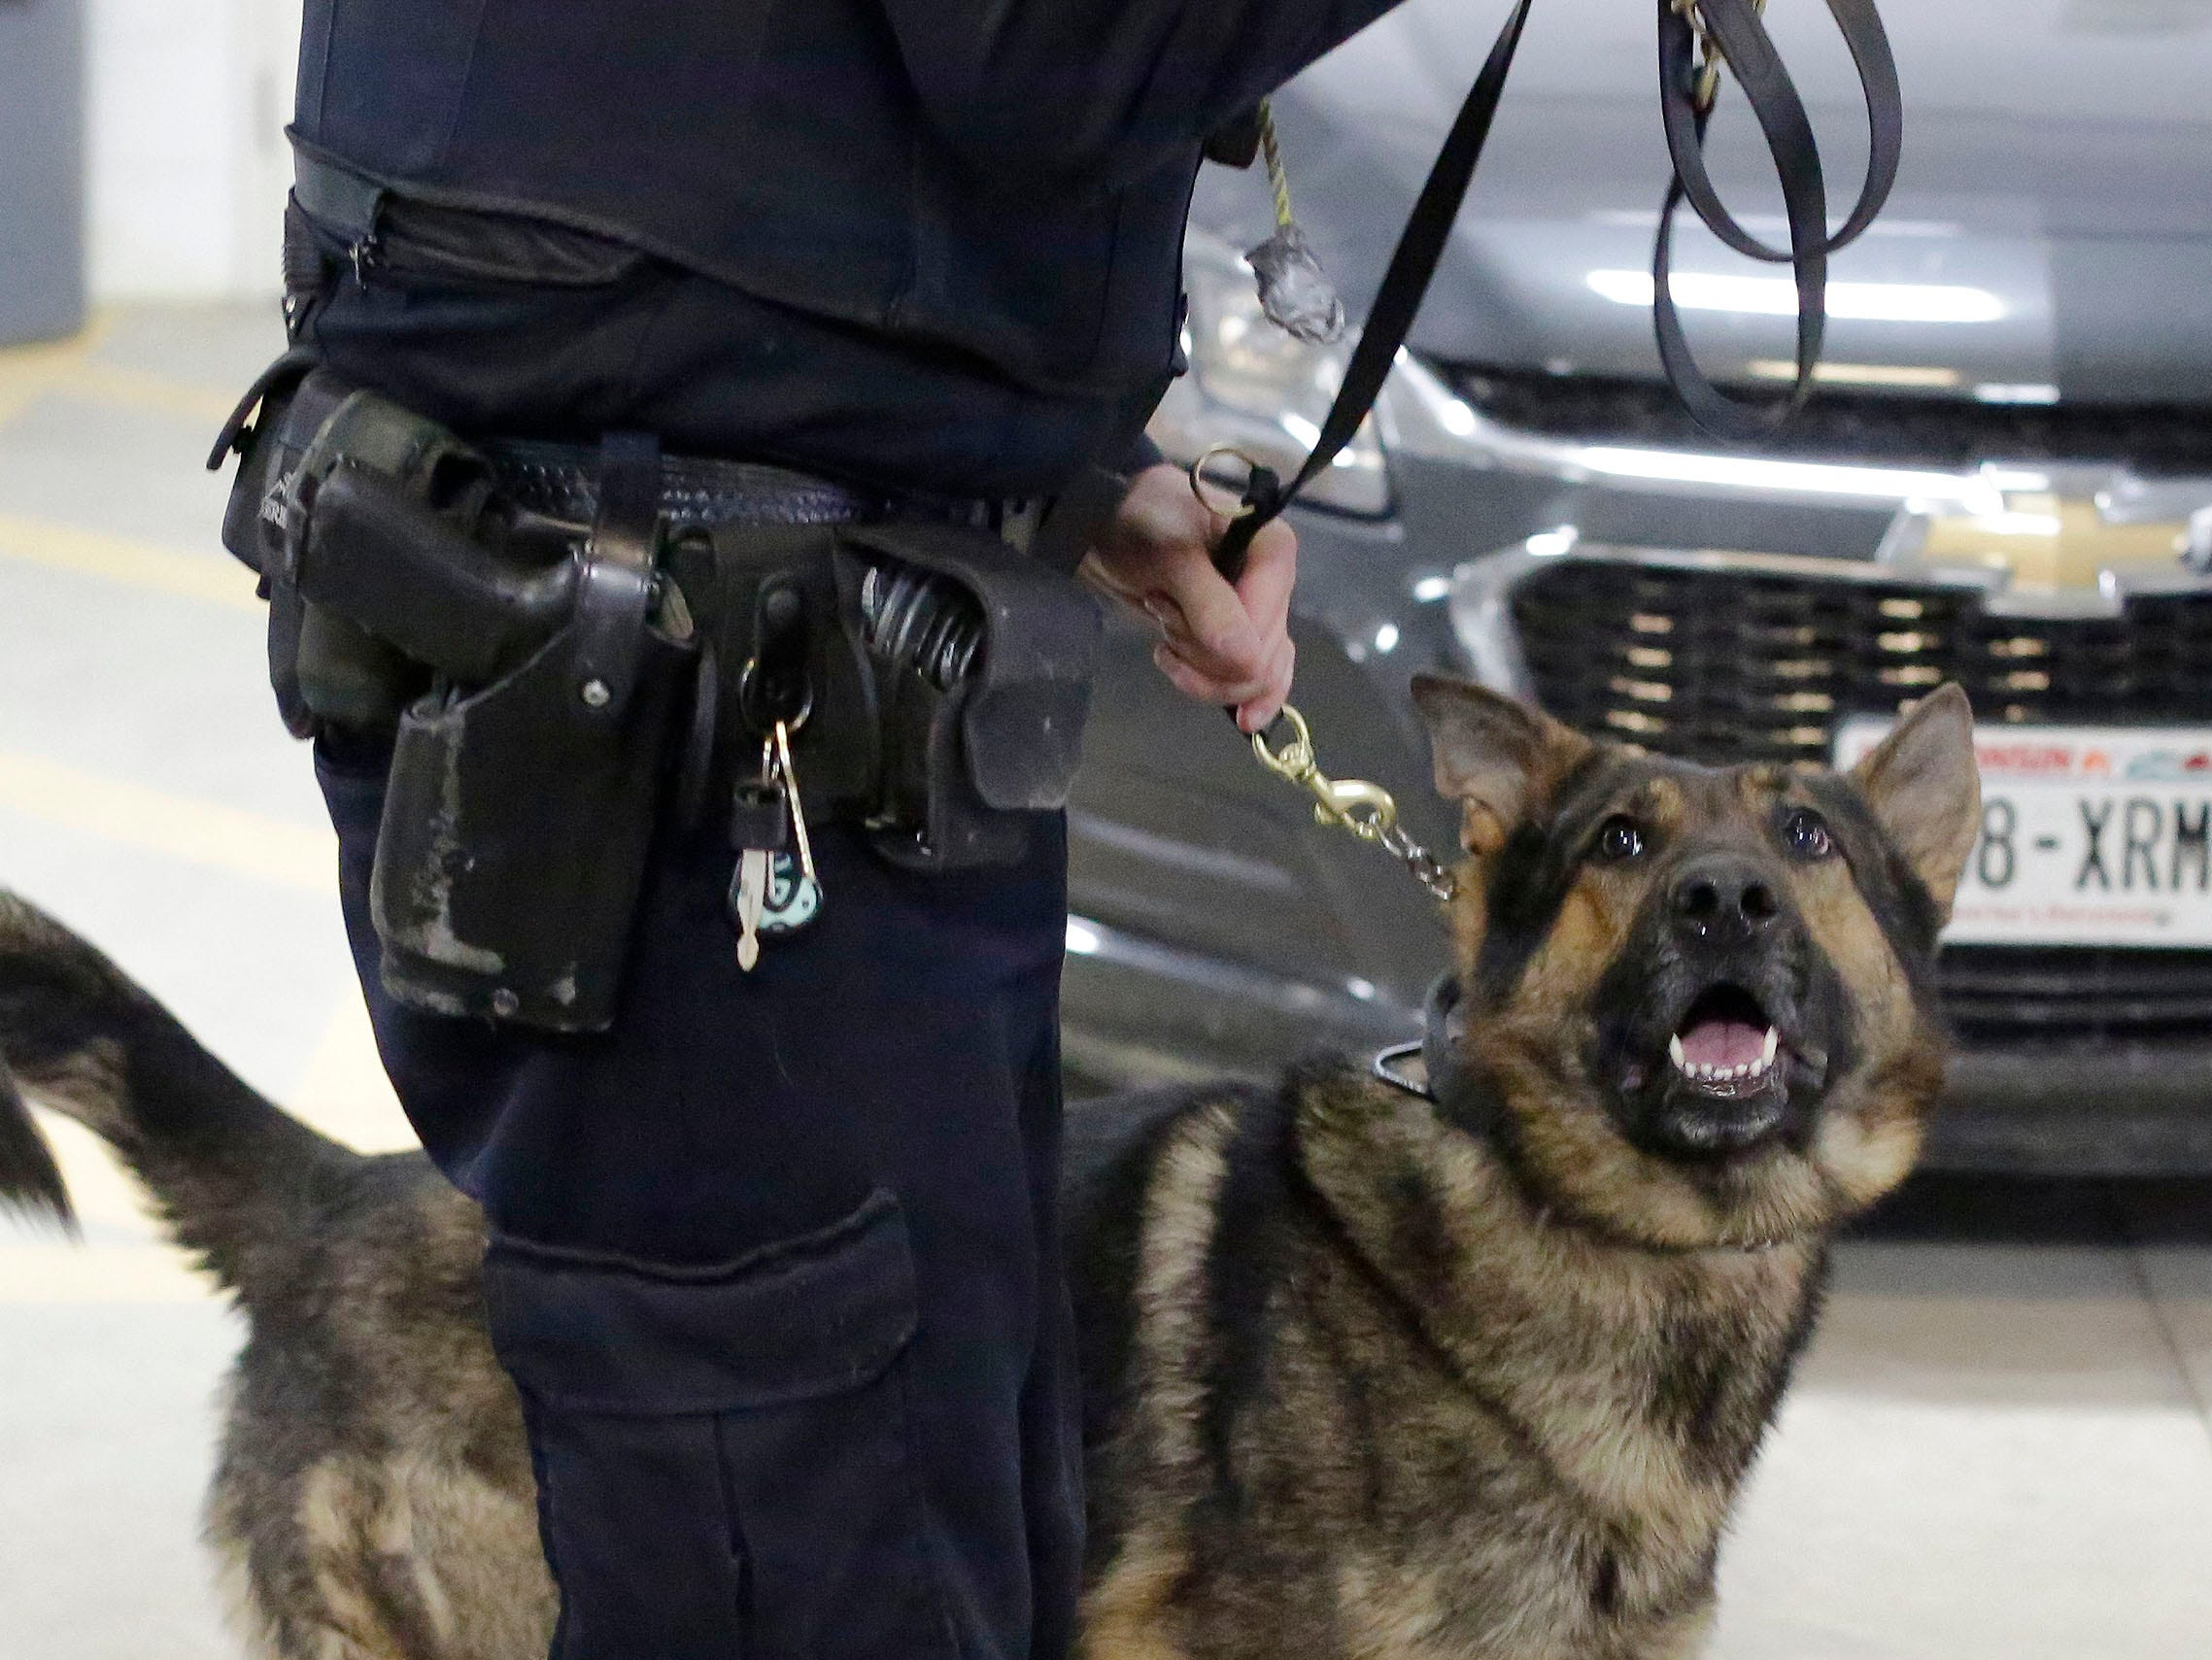 Sheboygan Police officer Matt Heimerl holds police dog Grimm during a training session, Wednesday, March 6, 2019, in Sheboygan, Wis.